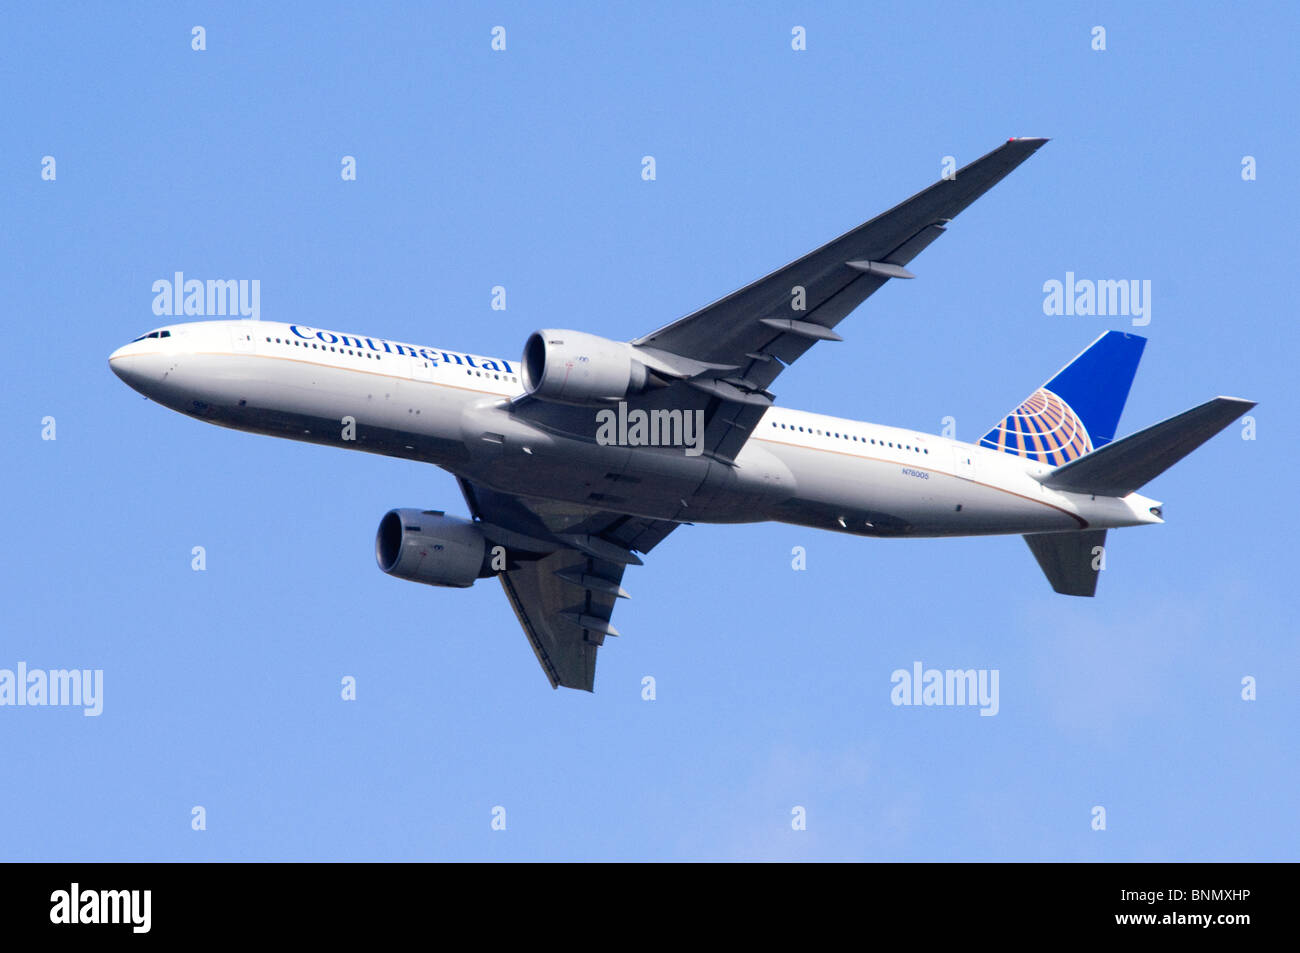 Boeing 777 operated by Continental Airlines climbing out after take off from London Heathrow Airport, UK. - Stock Image